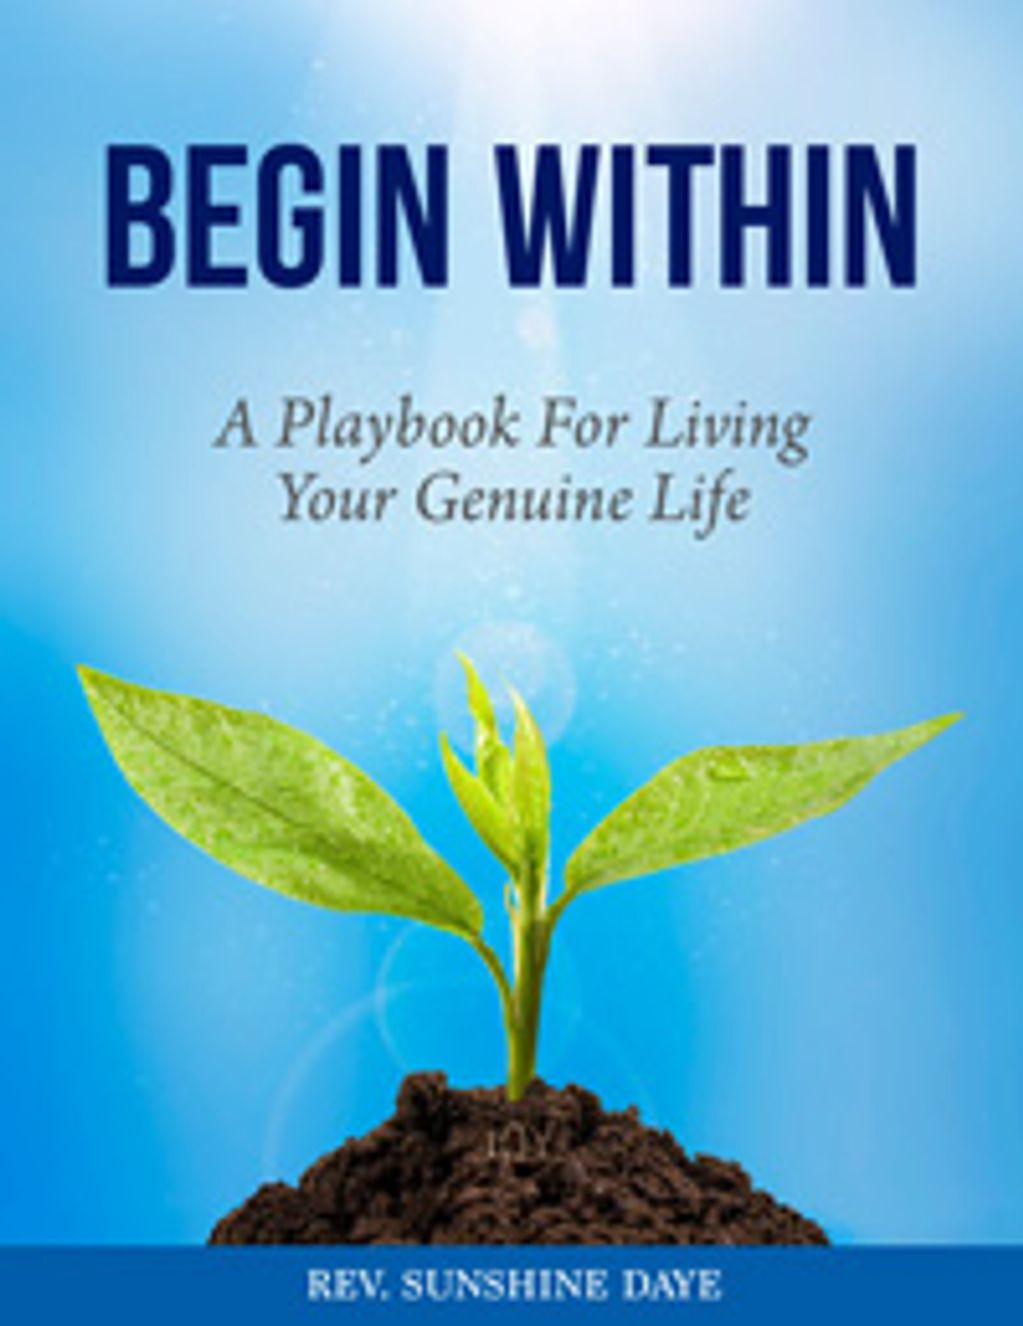 Book cover for BEGIN WITHIN a playbook for genuine living